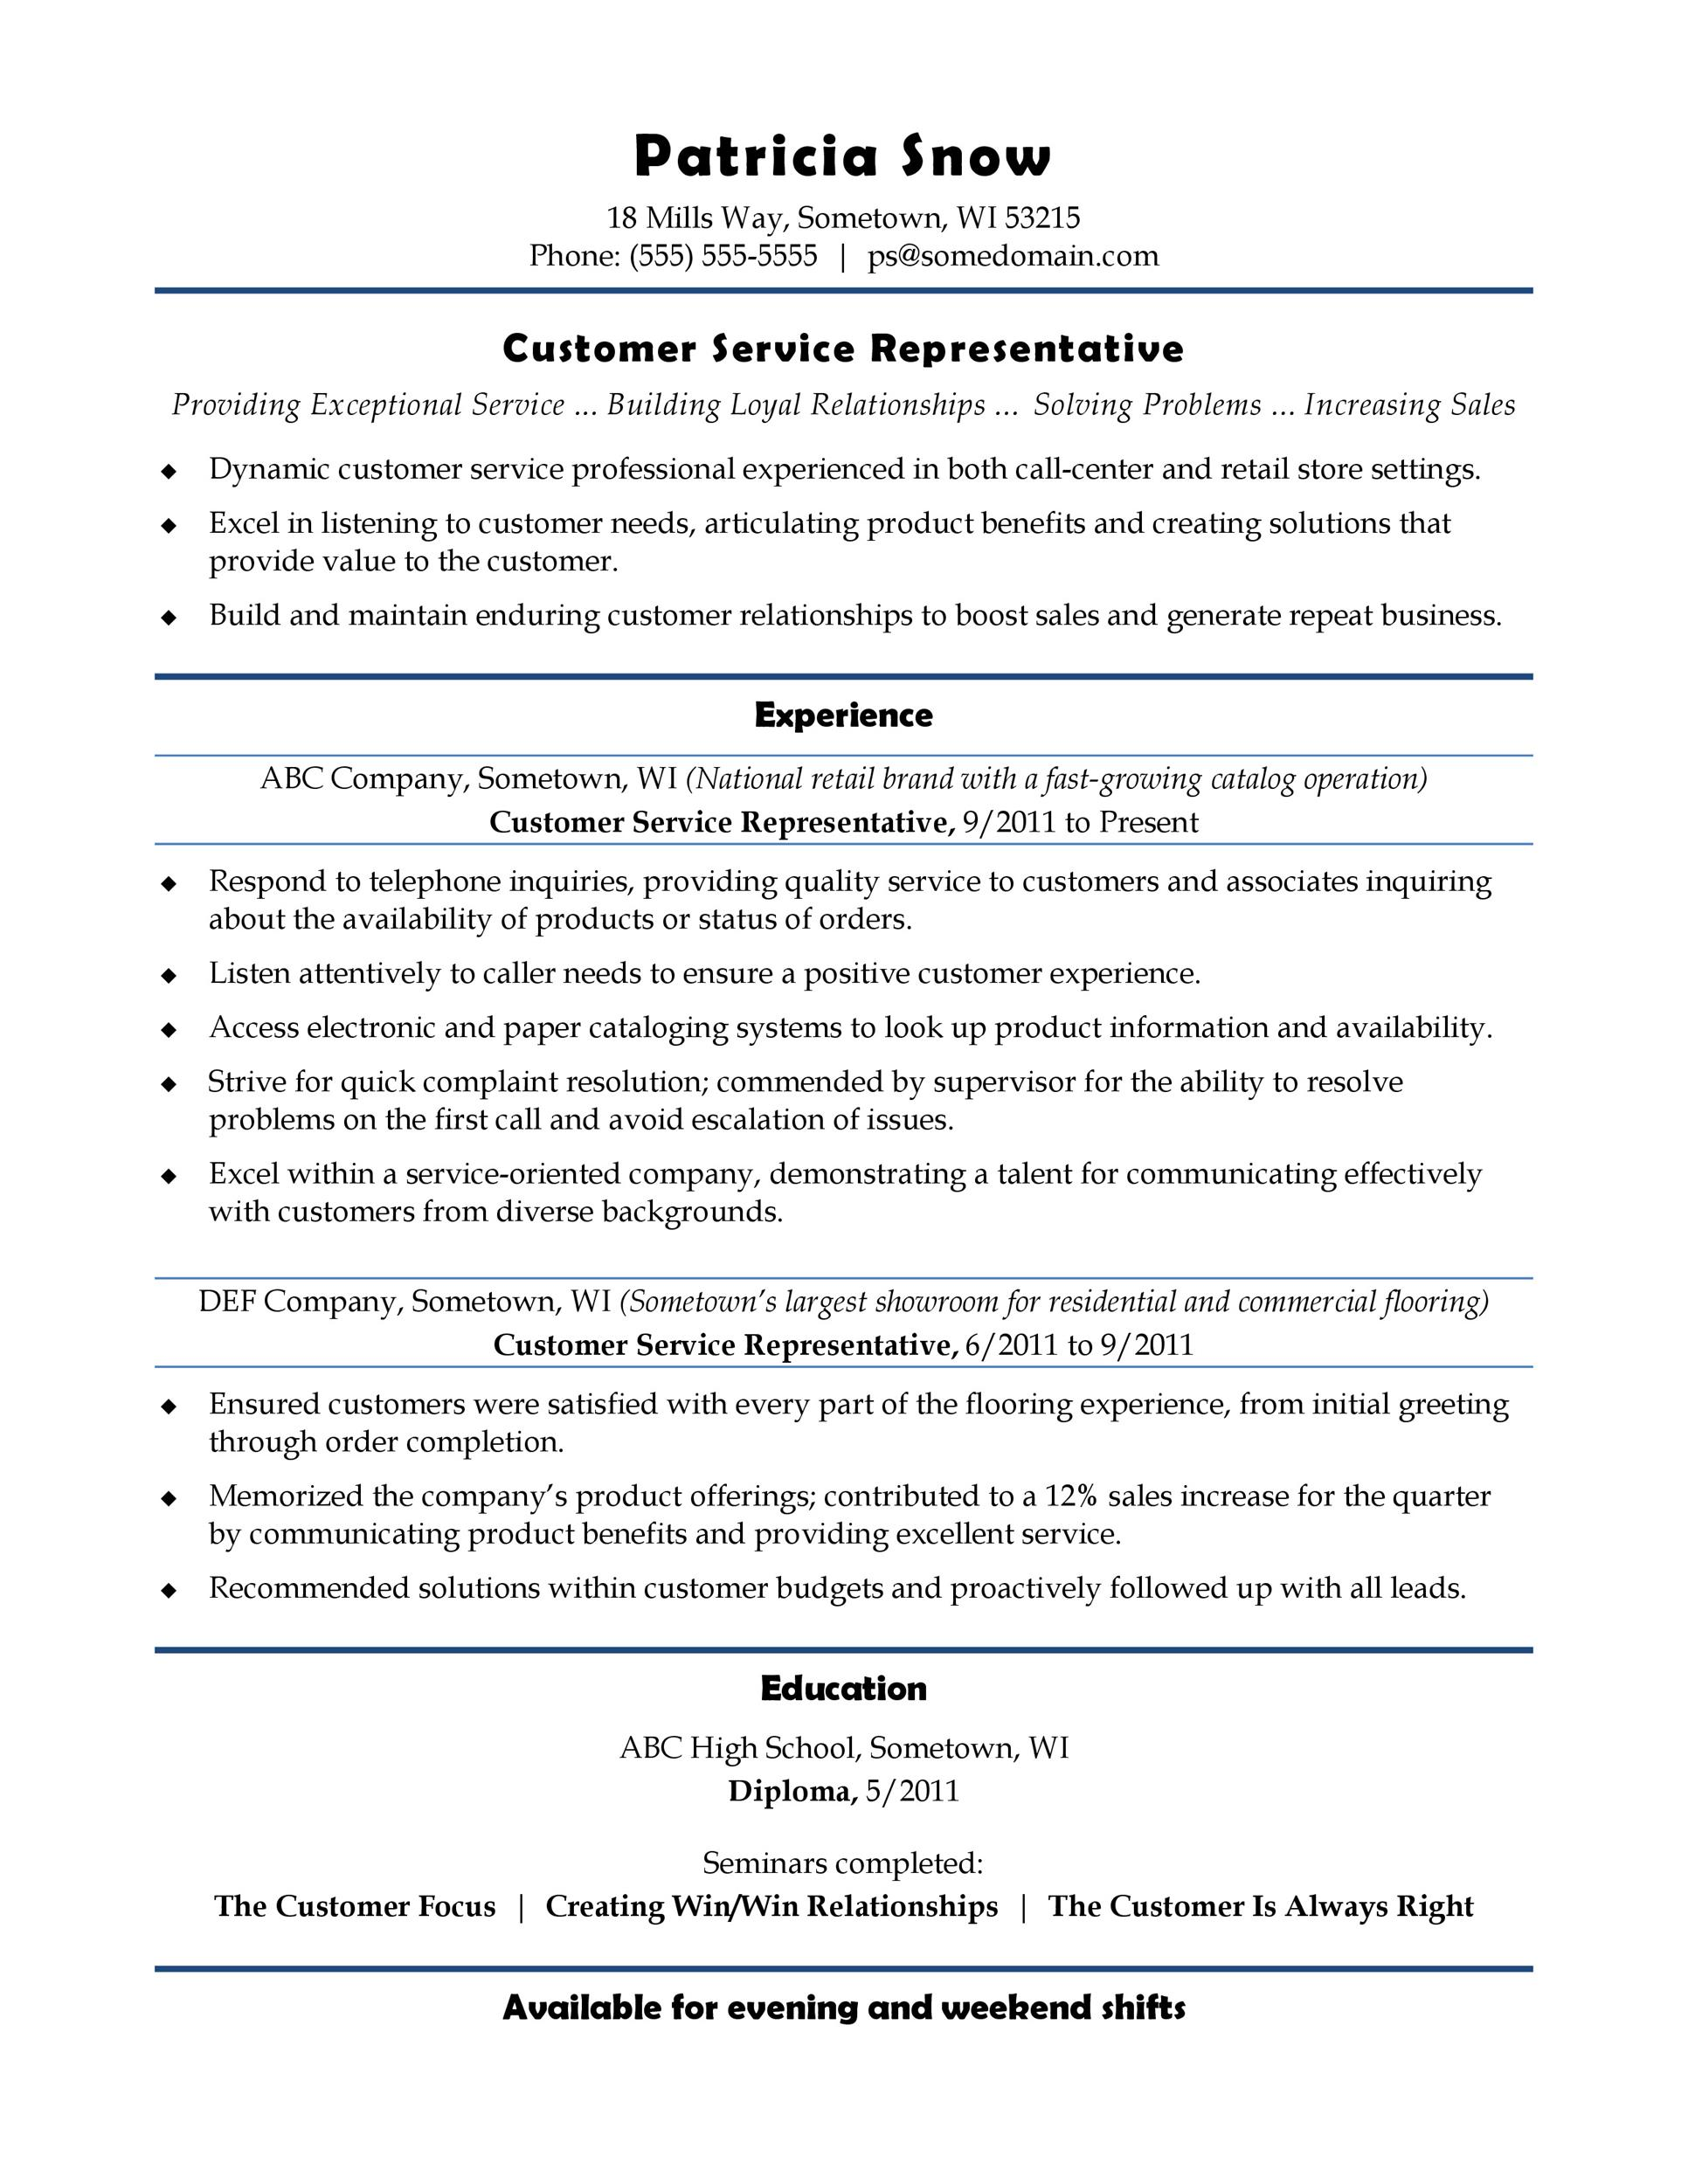 Customer Service Resume Sample Customer Service Representative Chronological  Sample Customer Service Resume